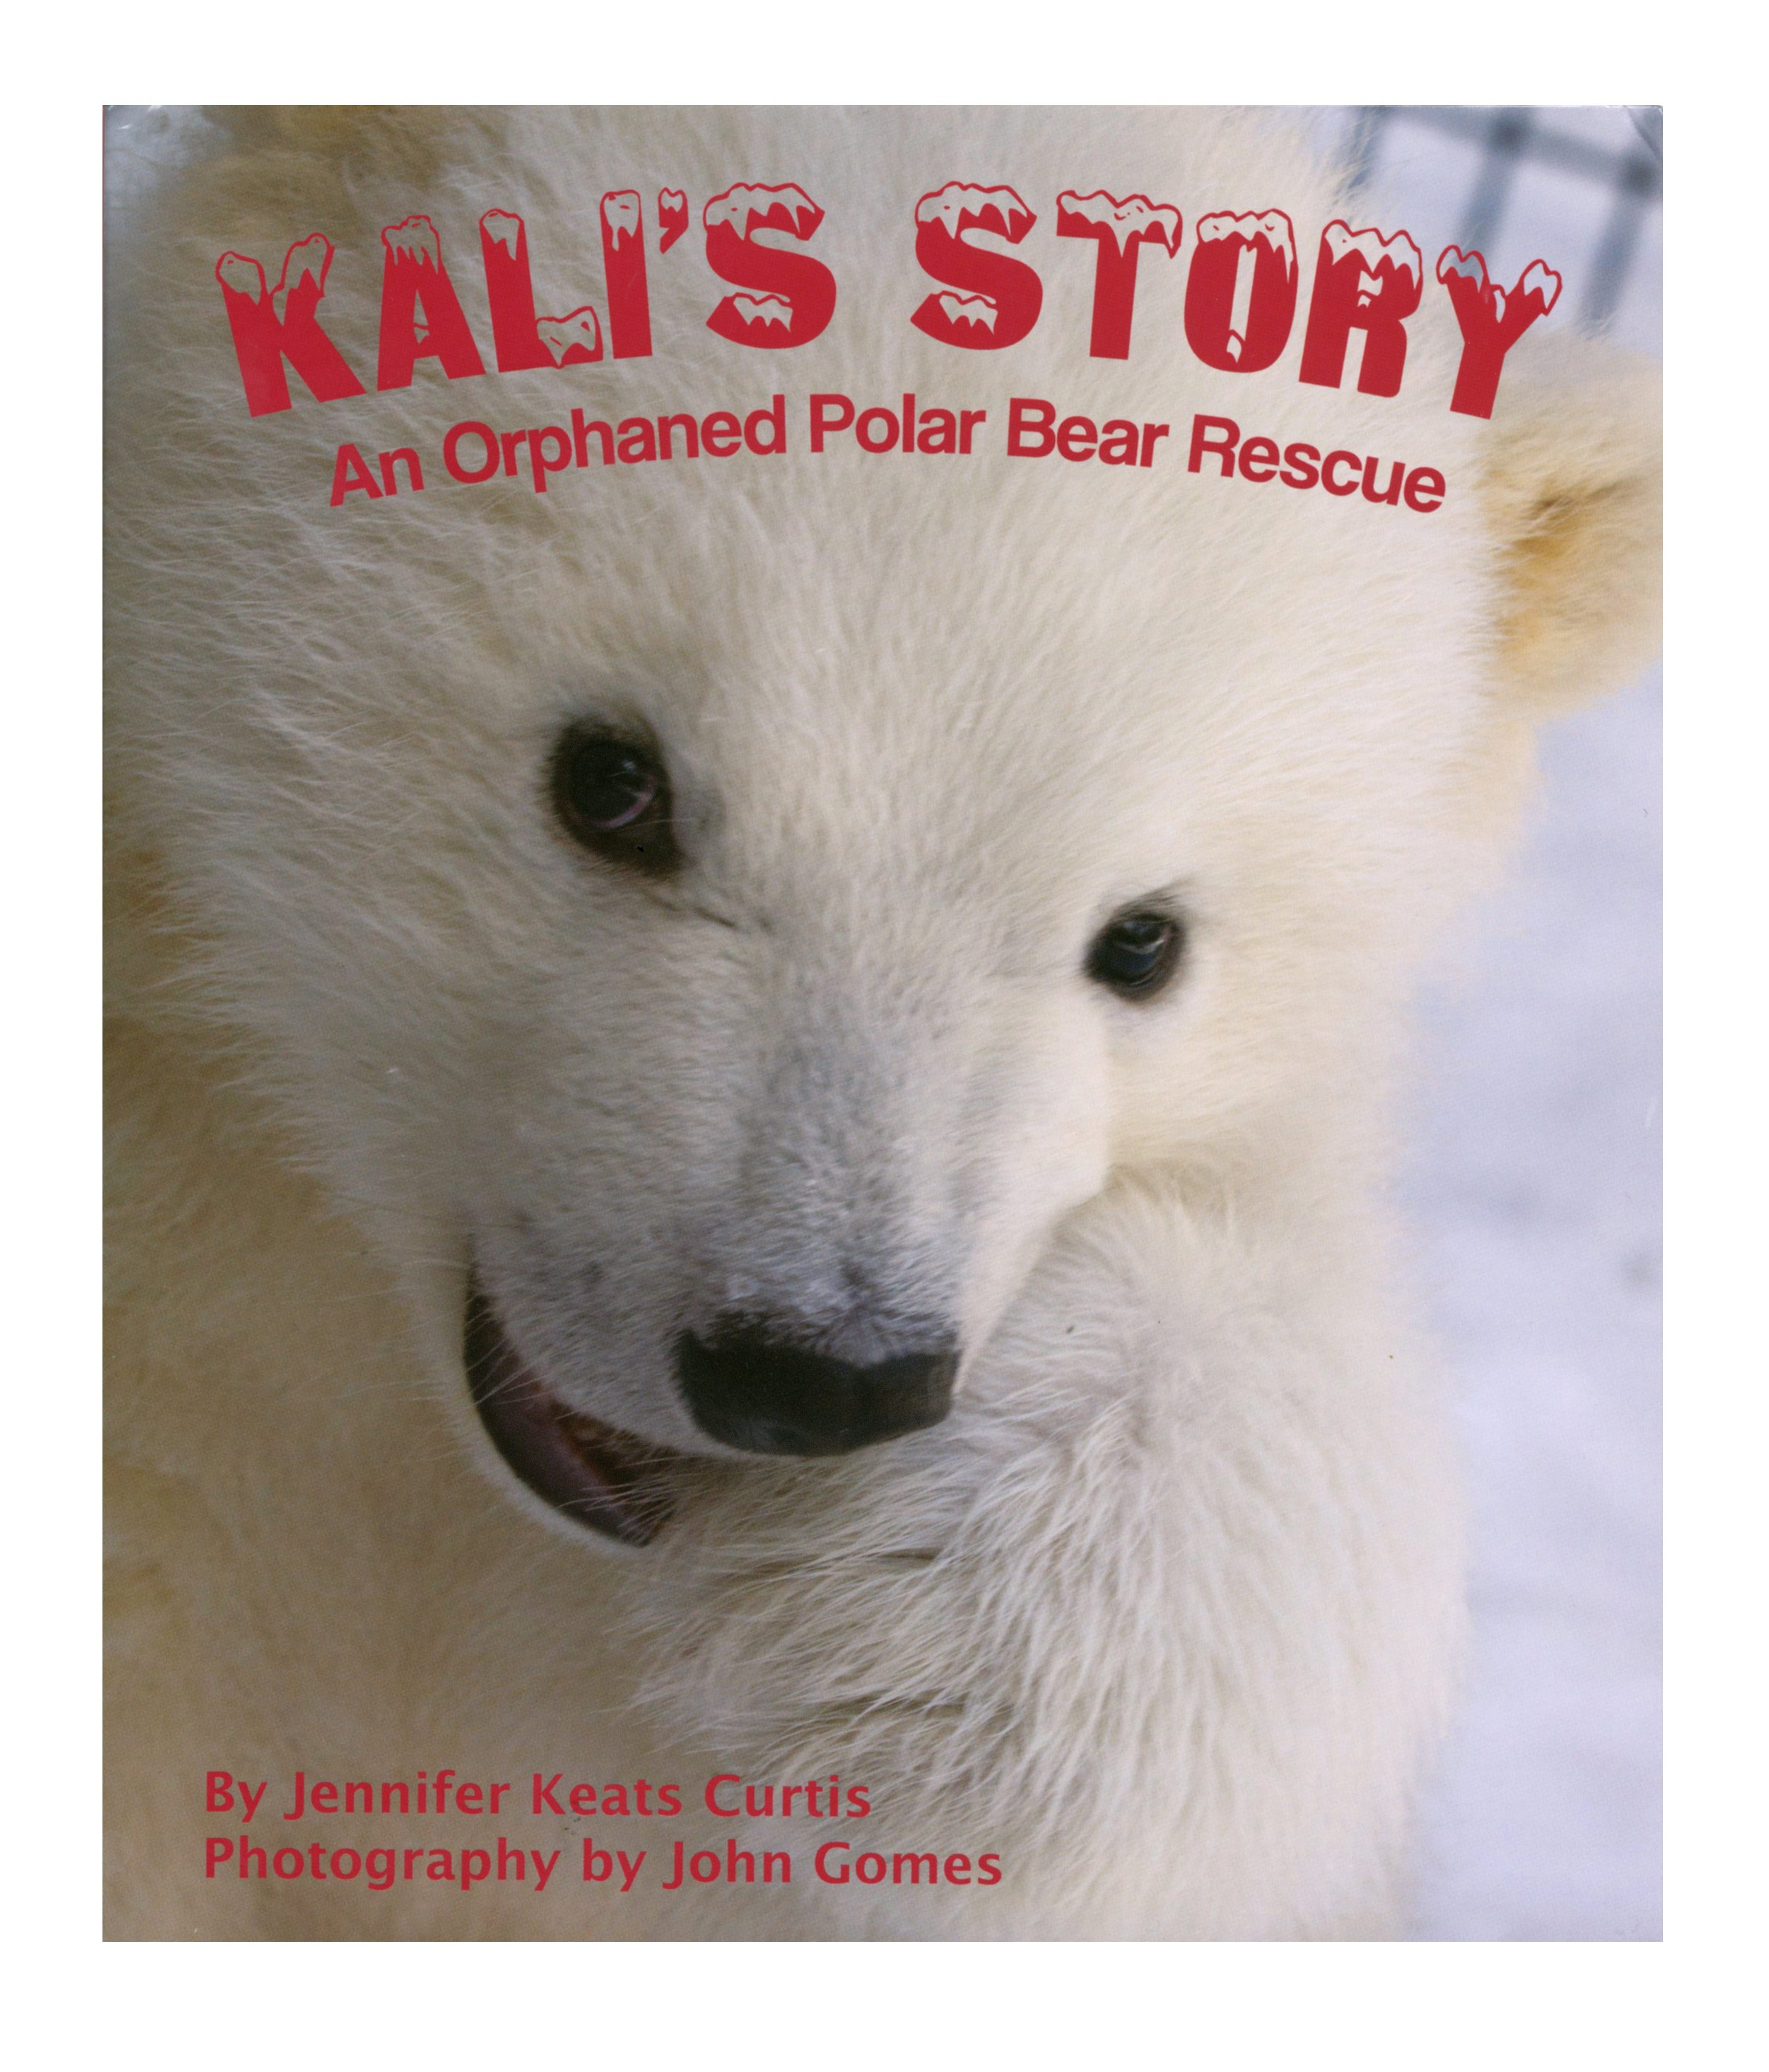 The book's cover features a close-up of Kali's face.